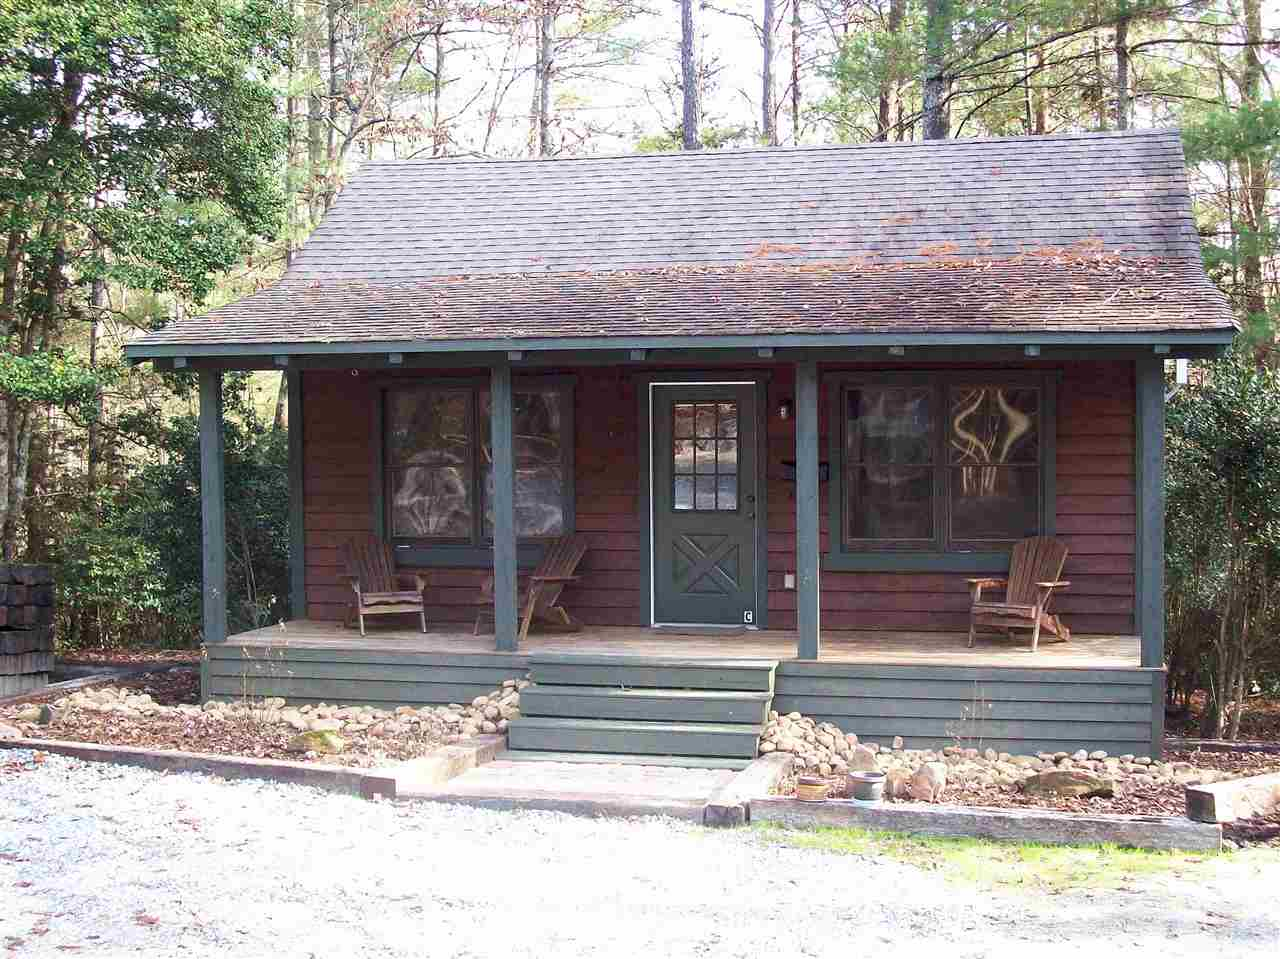 hartwell pin in vrbo cabin mountains nantahala rental vacation nc br lake rentals cabins smoky